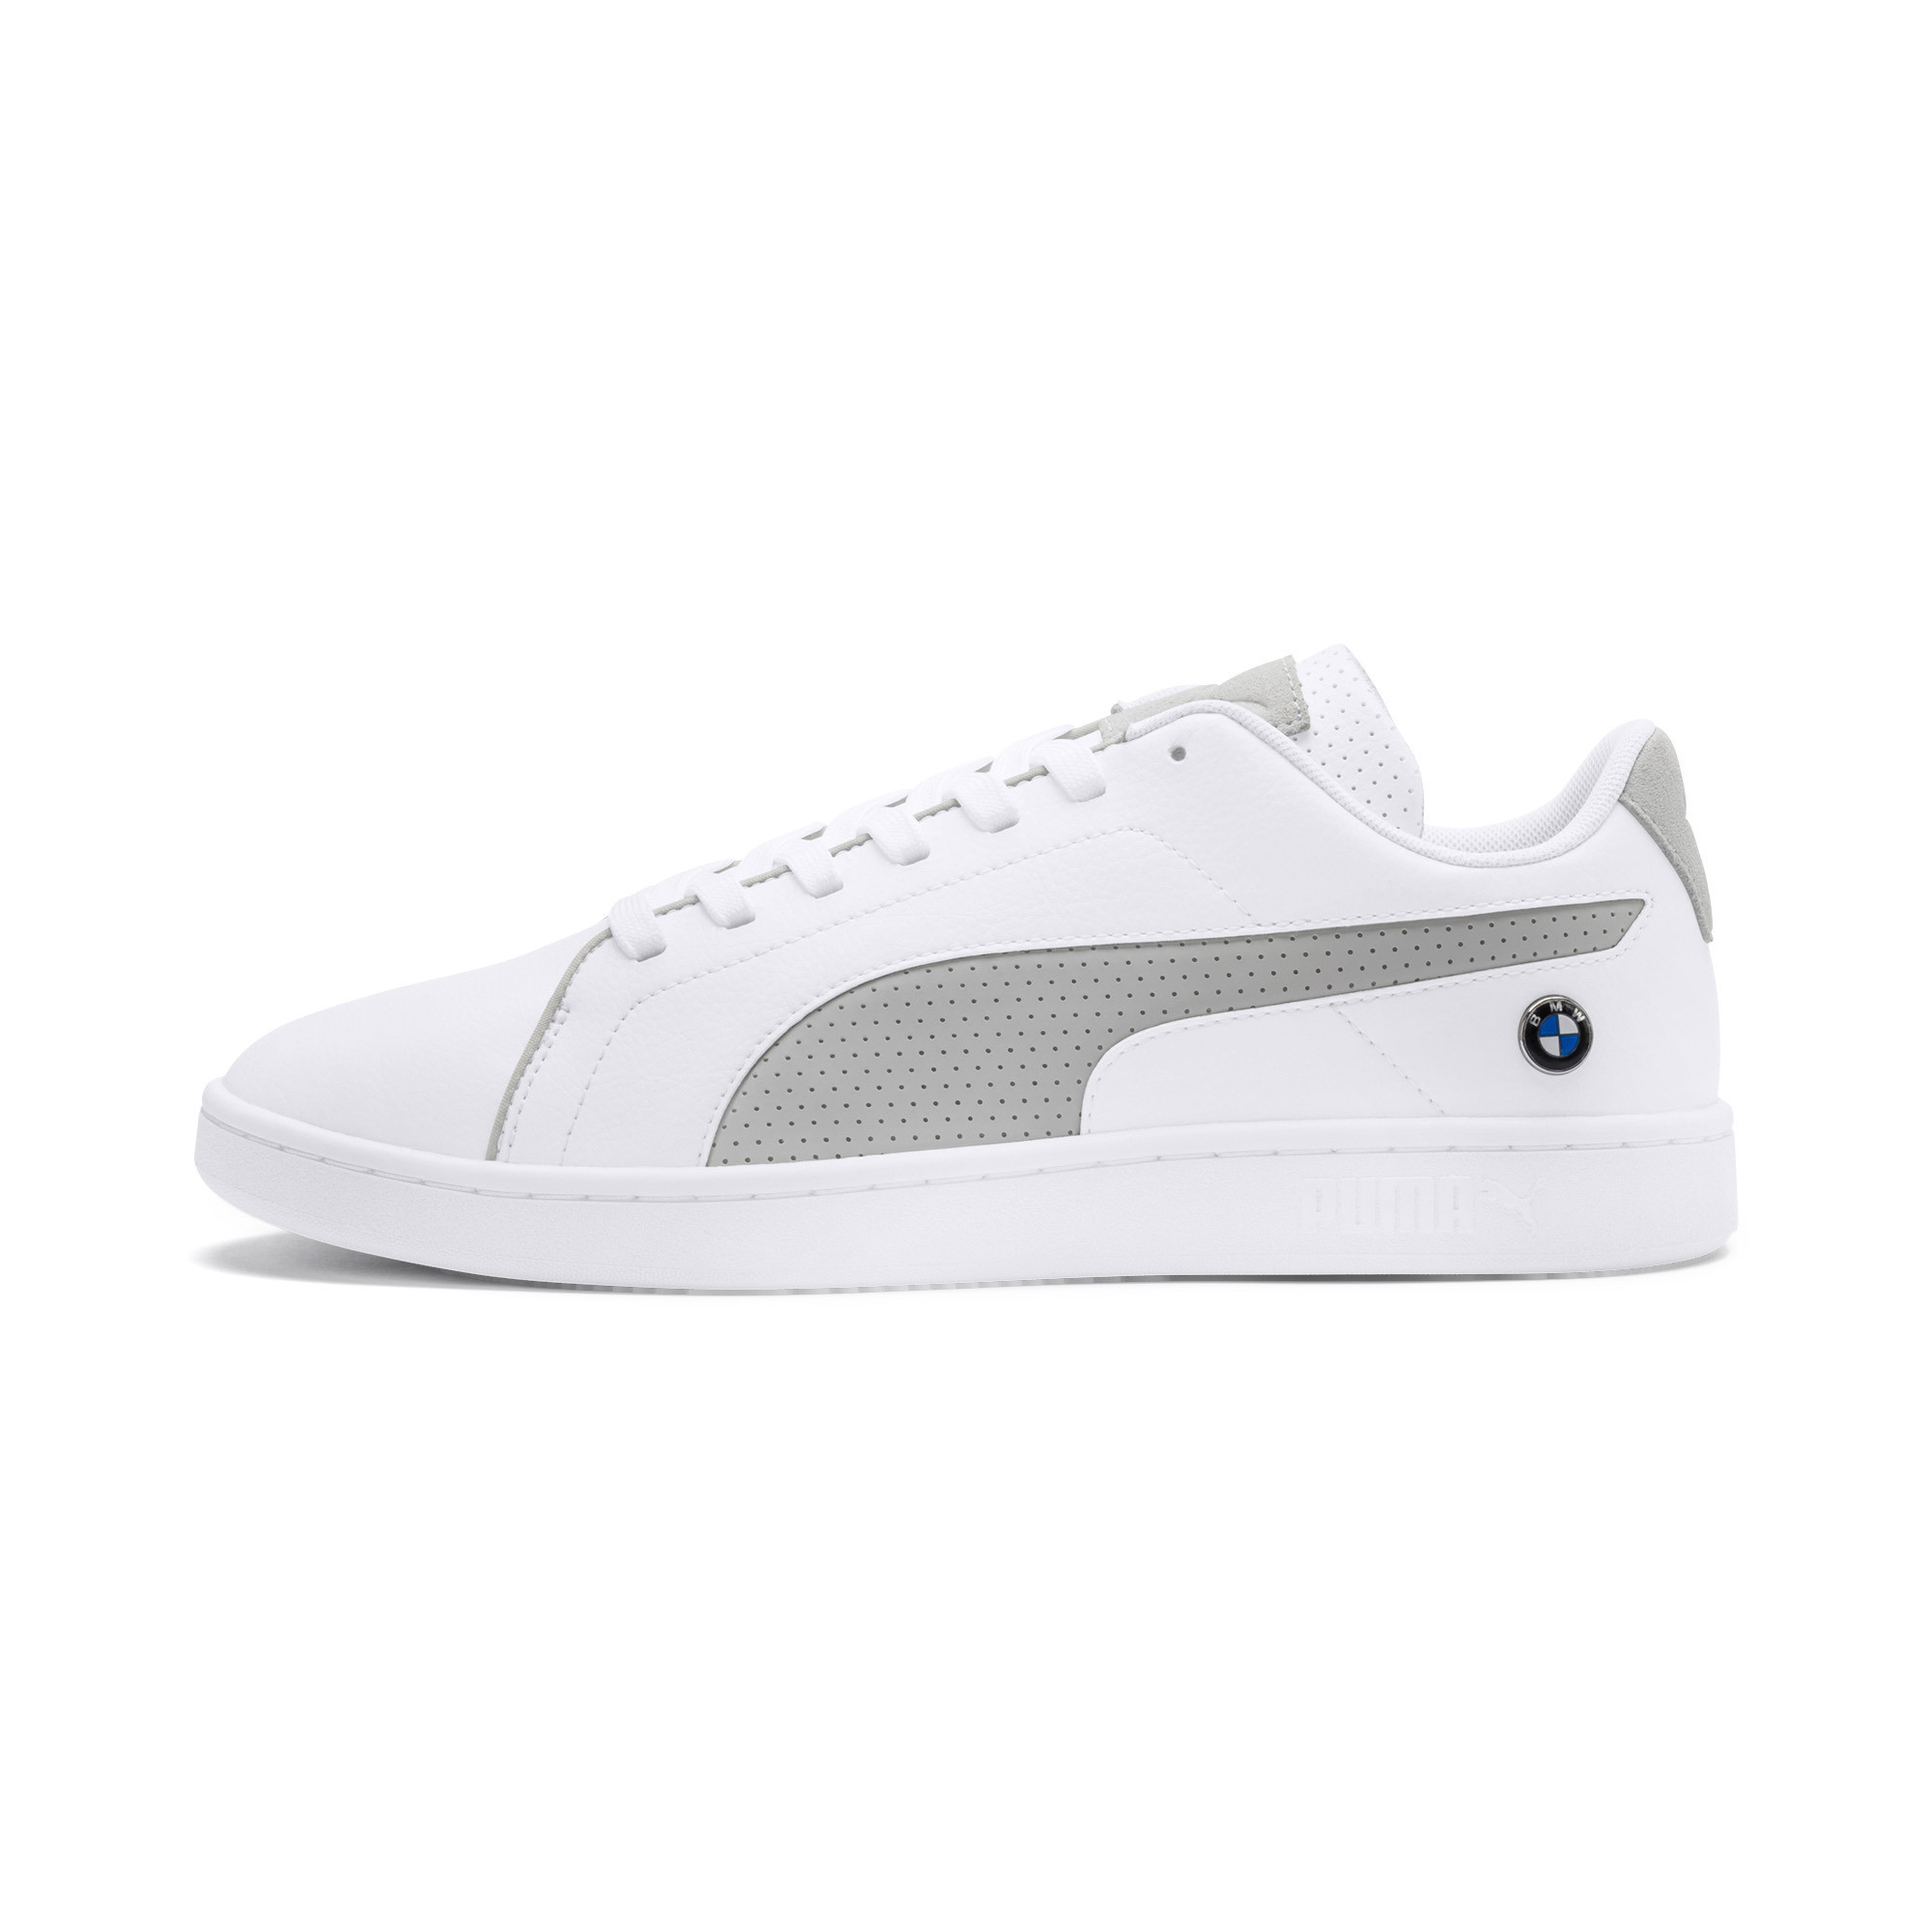 PUMA-BMW-M-Motorsport-Smash-v2-Men-039-s-Sneakers-Men-Shoe-Auto miniatura 4